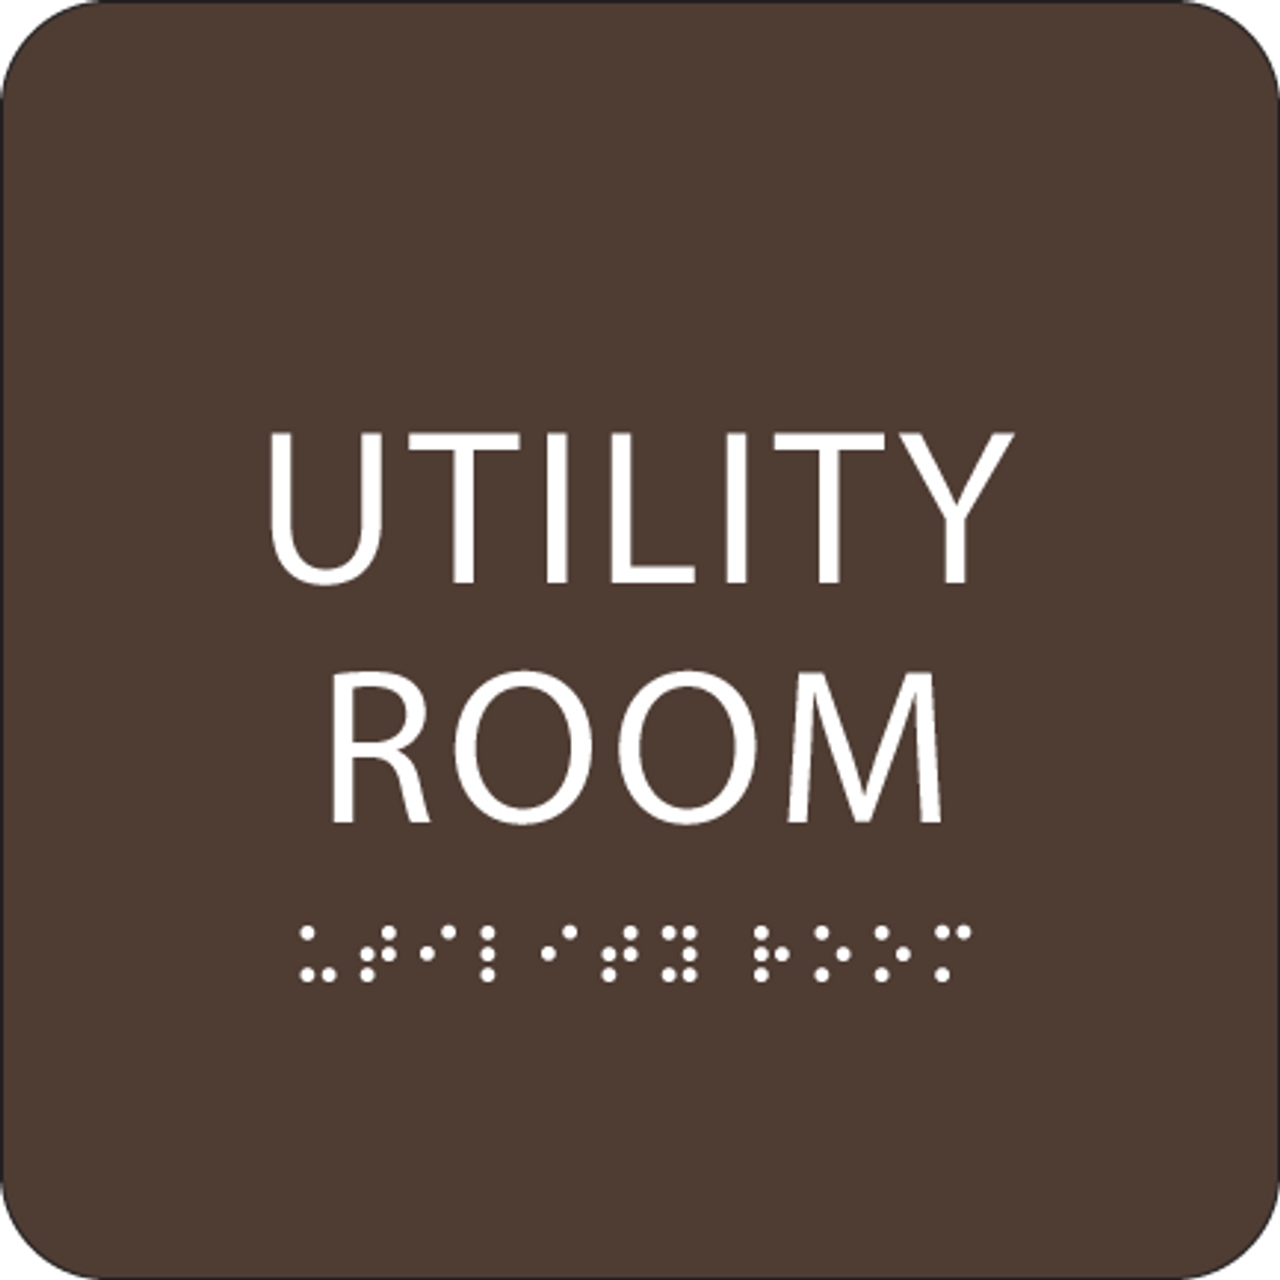 Dark Brown Utility Room ADA Sign